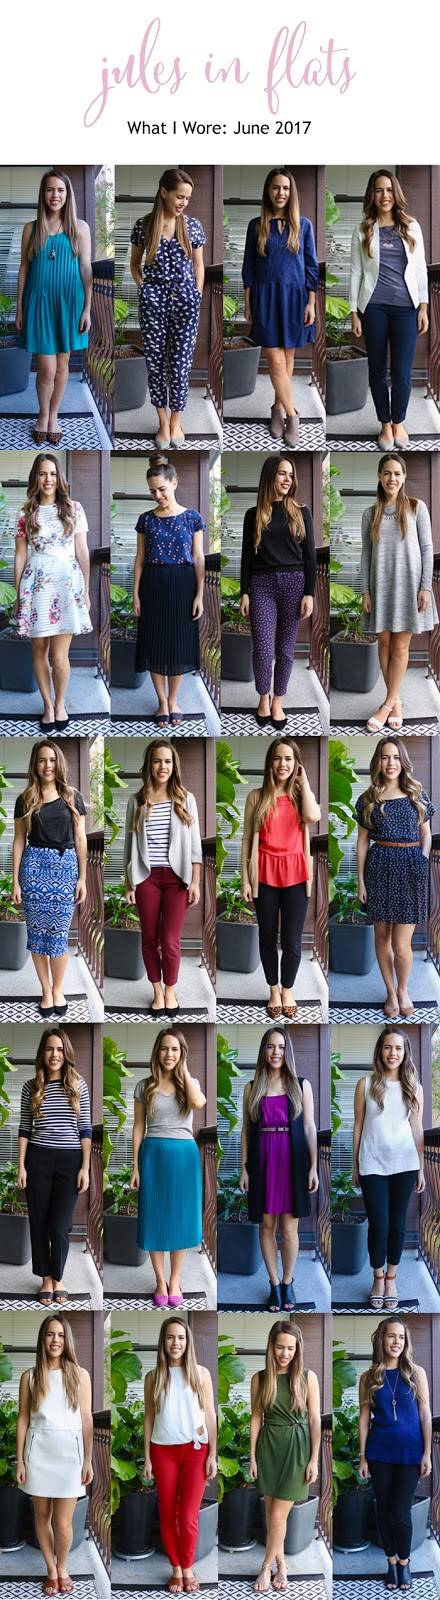 MONTHLY OUTFIT ROUNDUPS